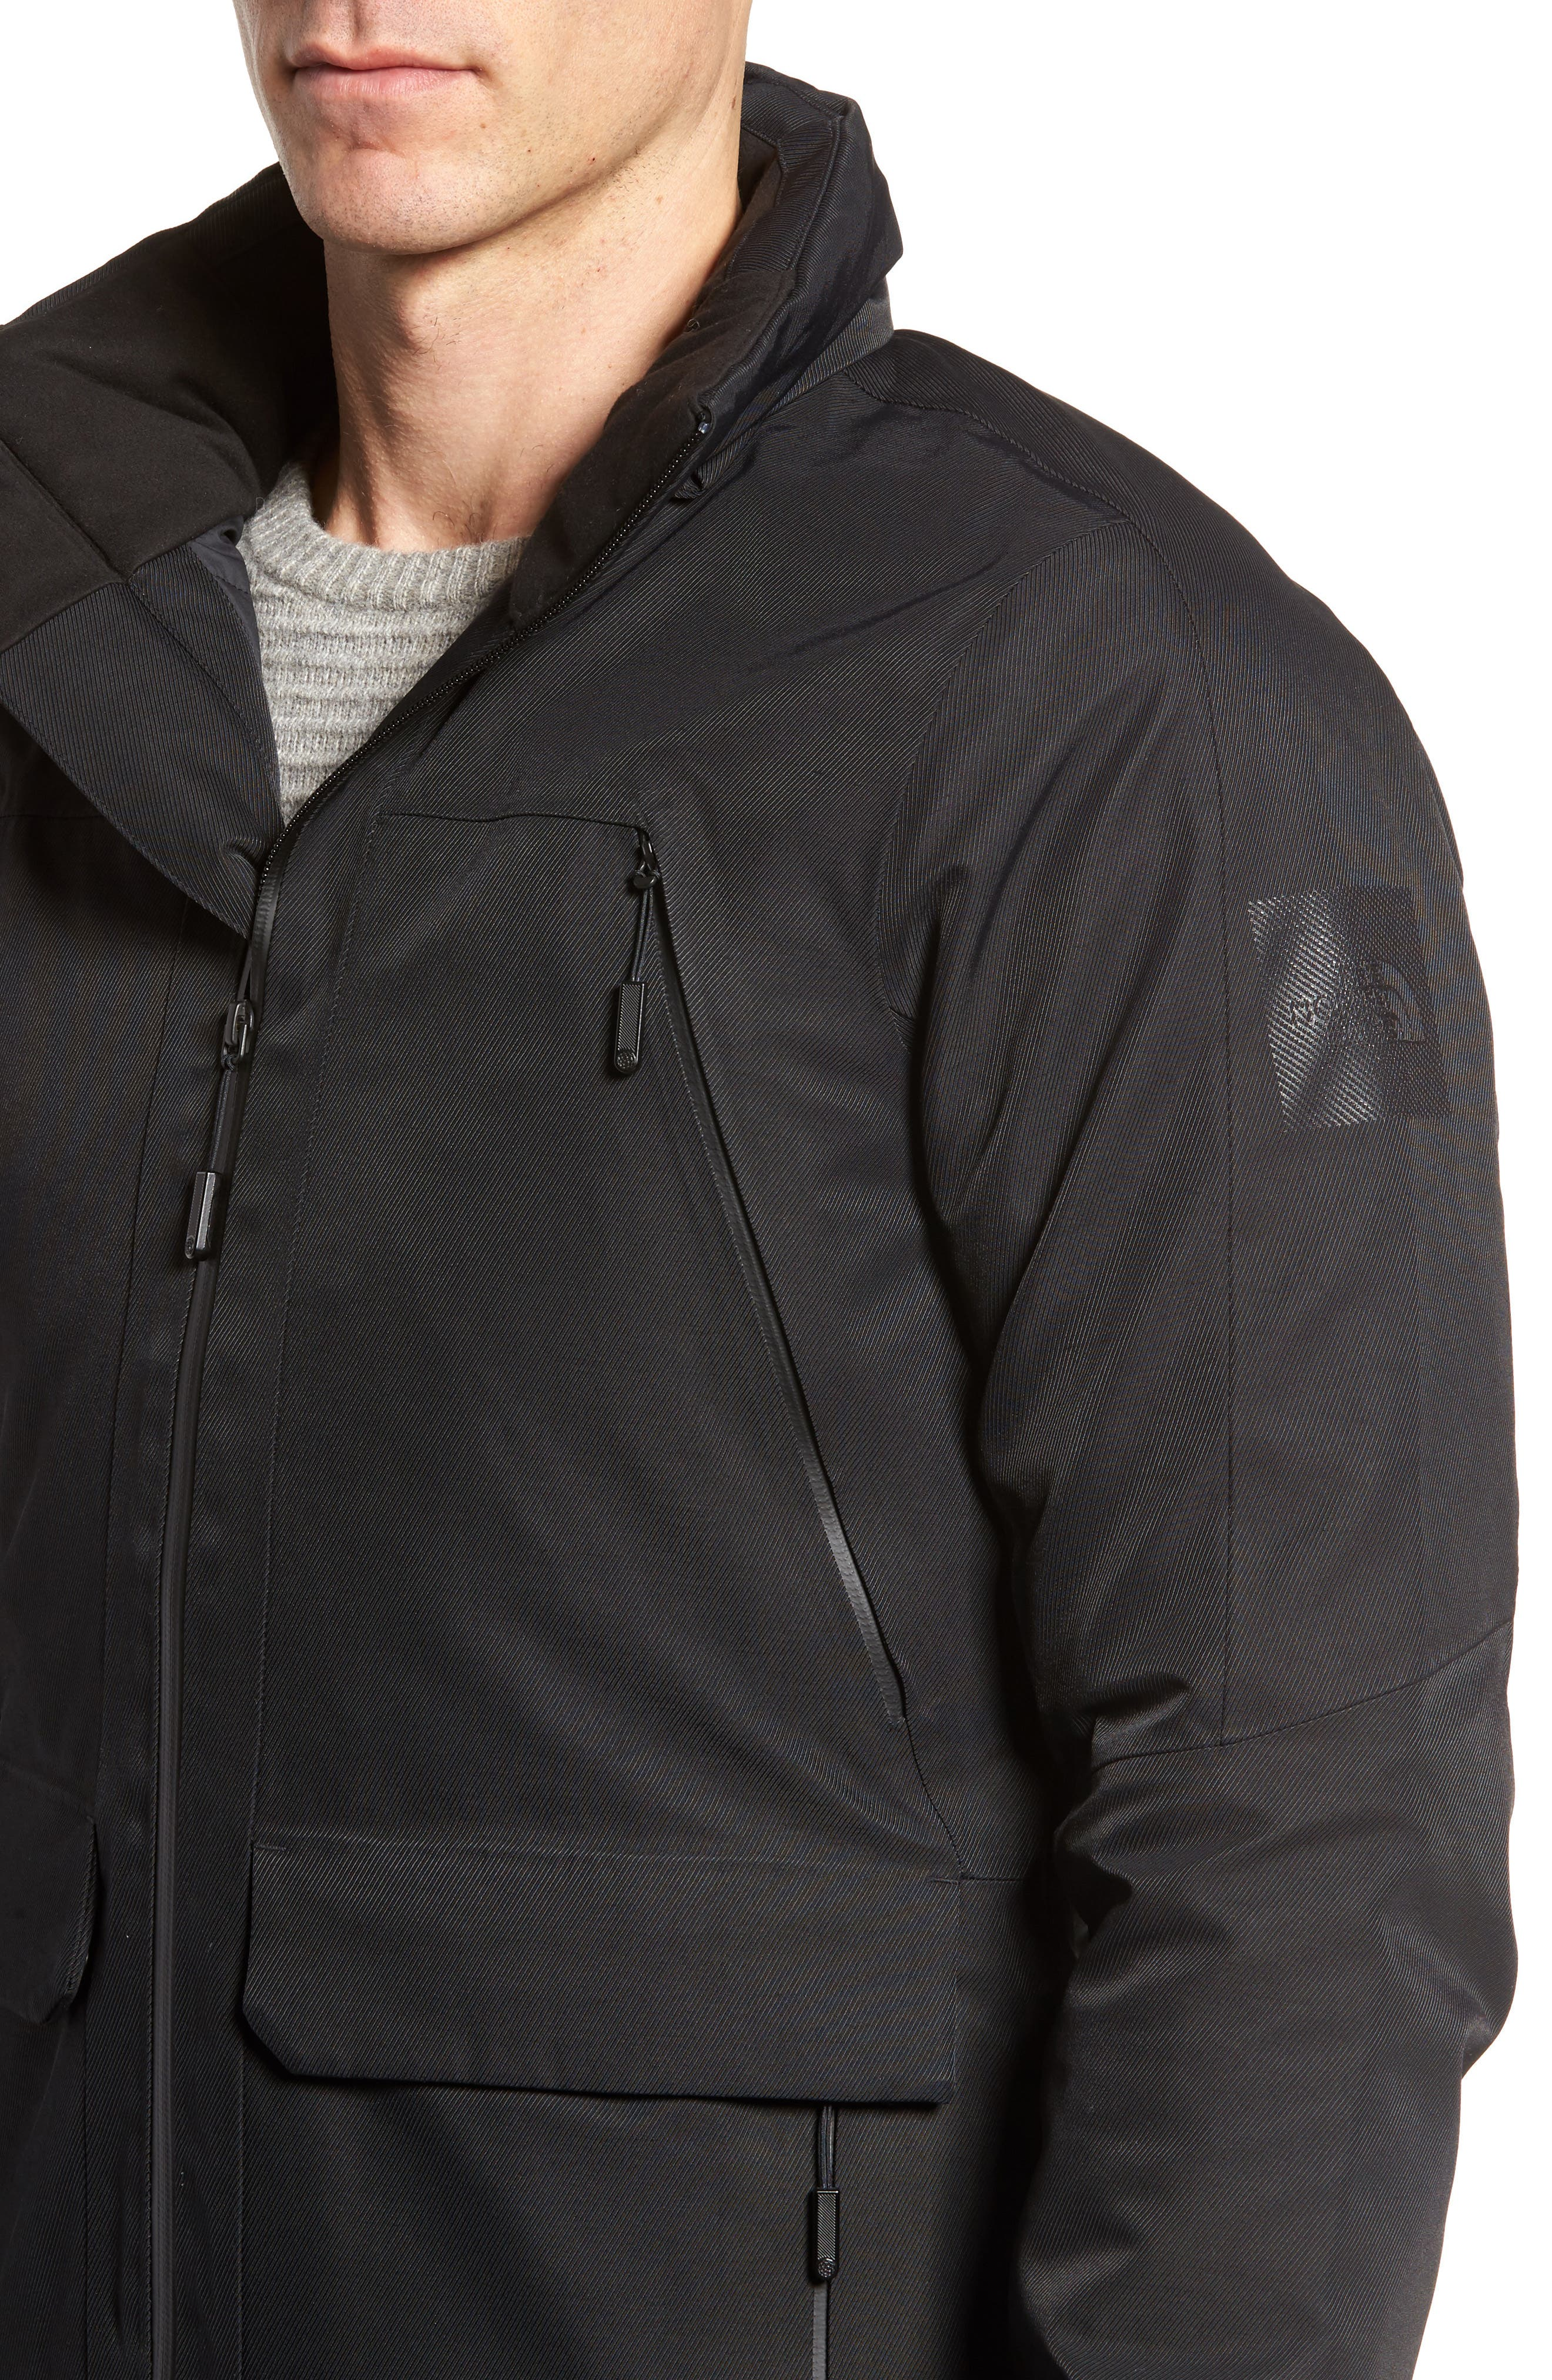 Cryos Waterproof Gore-Tex<sup>®</sup> PrimaLoft<sup>®</sup> Gold Insulated Jacket,                             Alternate thumbnail 4, color,                             Black